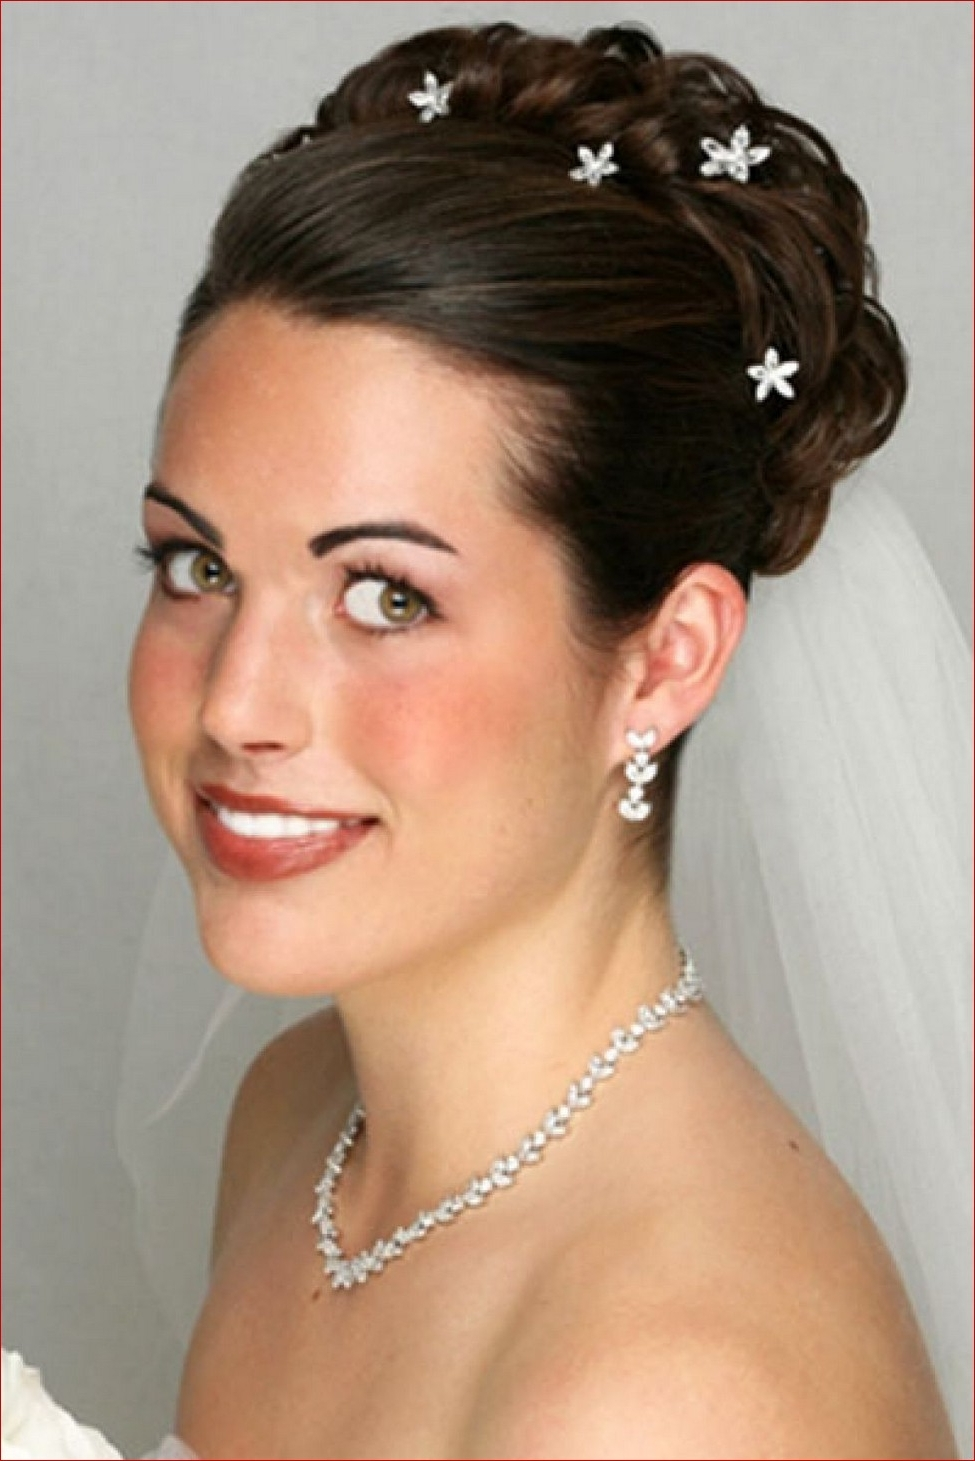 2017 Wedding Hairstyles For Shoulder Length Hair With Veil Within Best Wedding Hair Shoulder Length For Yournstagram Photos Hairstyles (View 1 of 15)